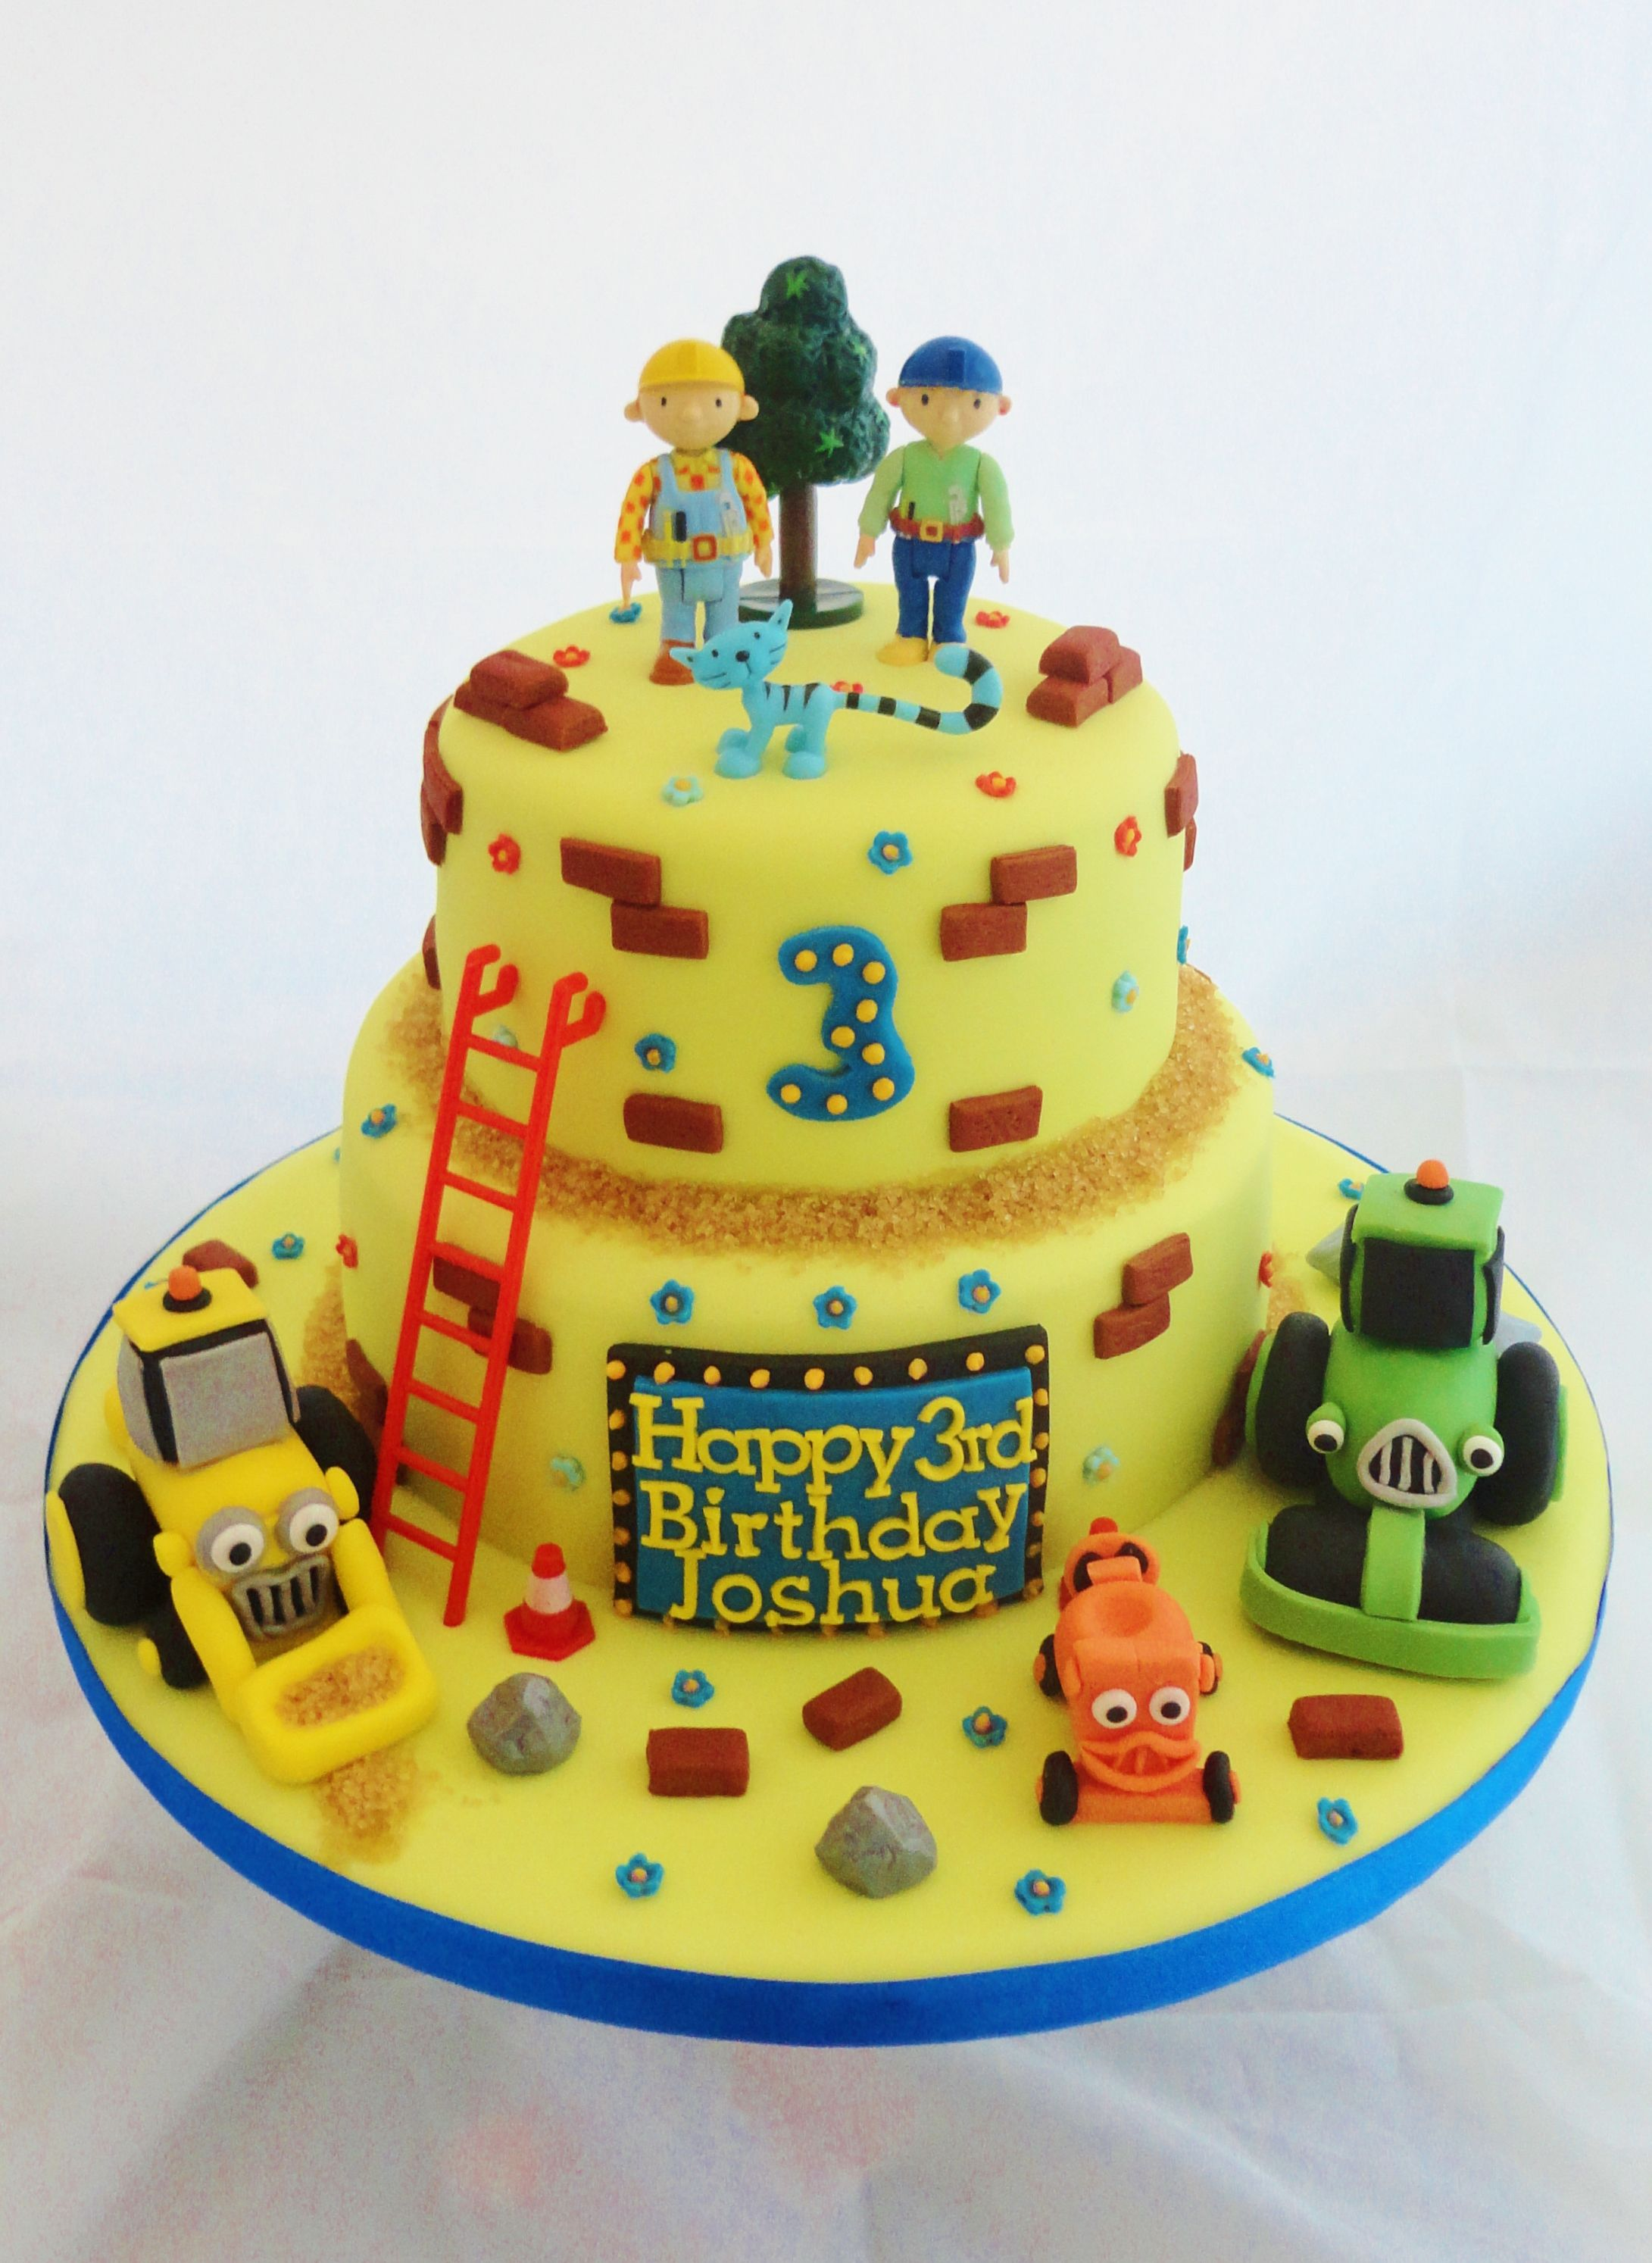 Bob the builder cake | Bob The Builder Cake in 2019 ...